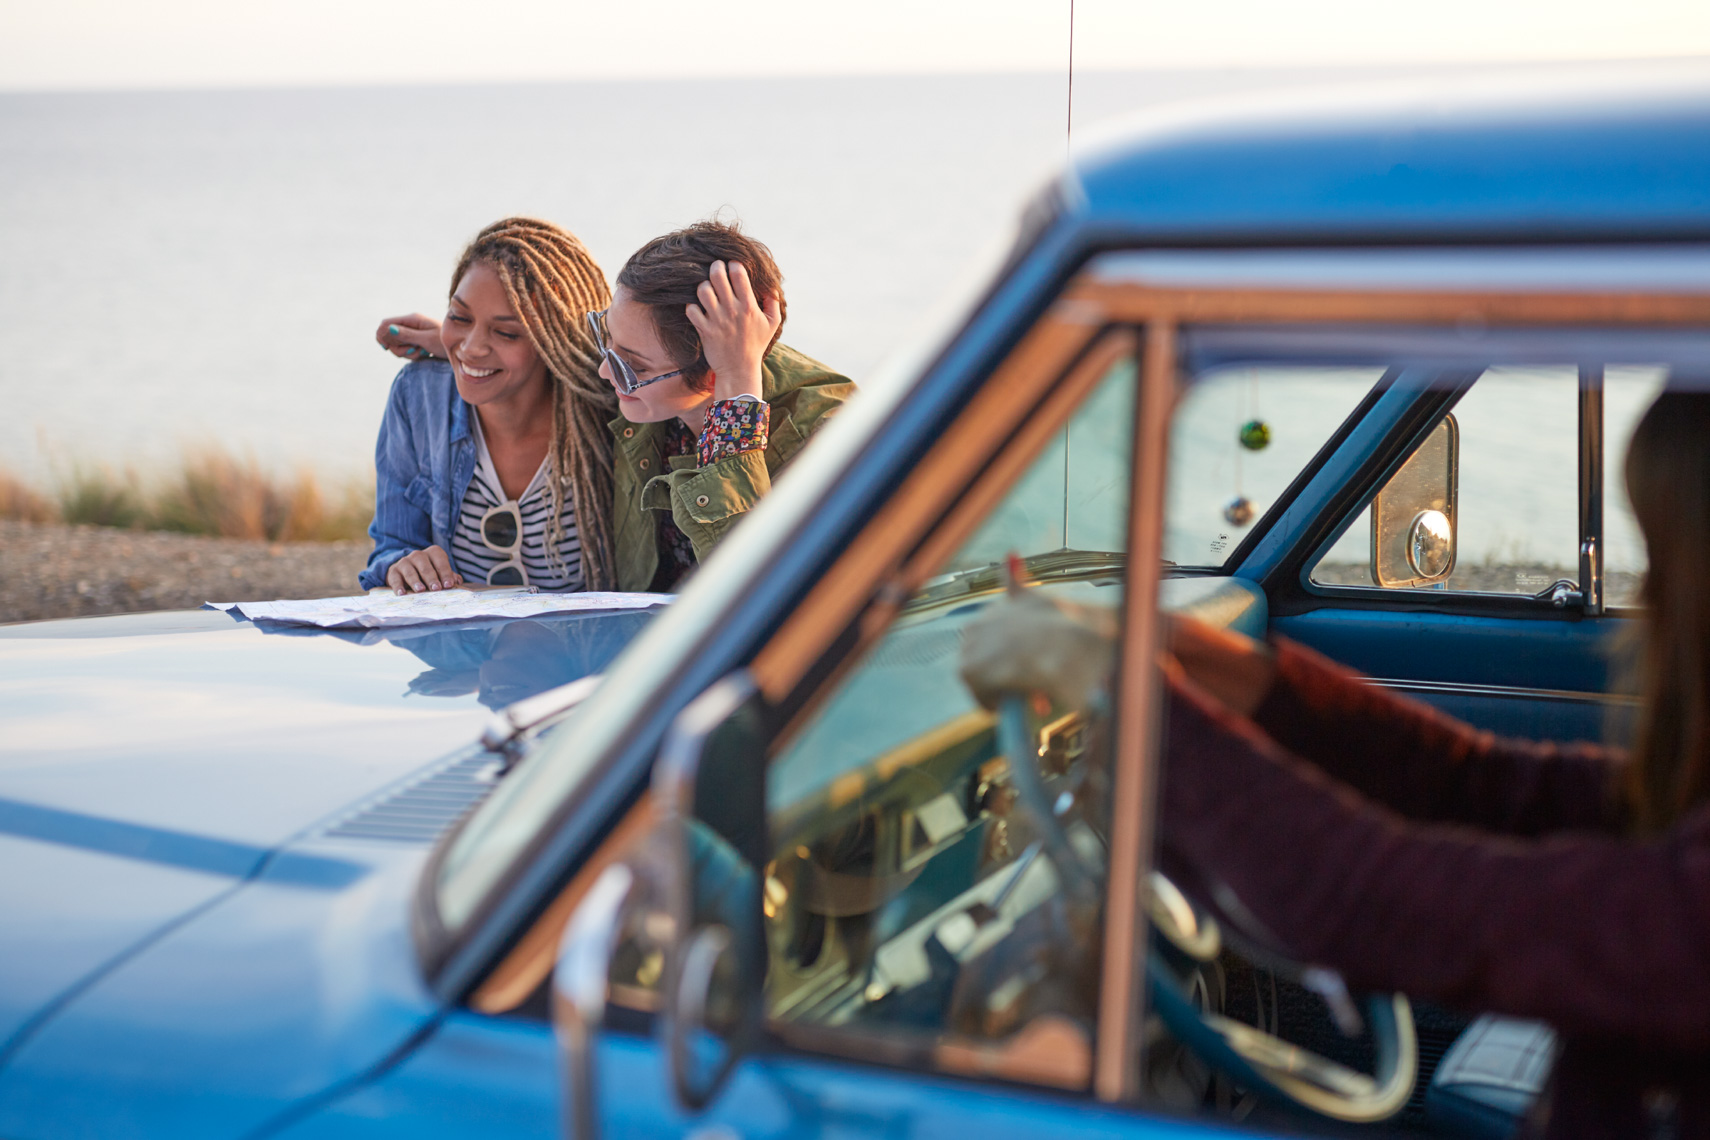 Two women looking at a map on the hood of a vintage American car along a coastal road in California San Francisco lifestyle photographer